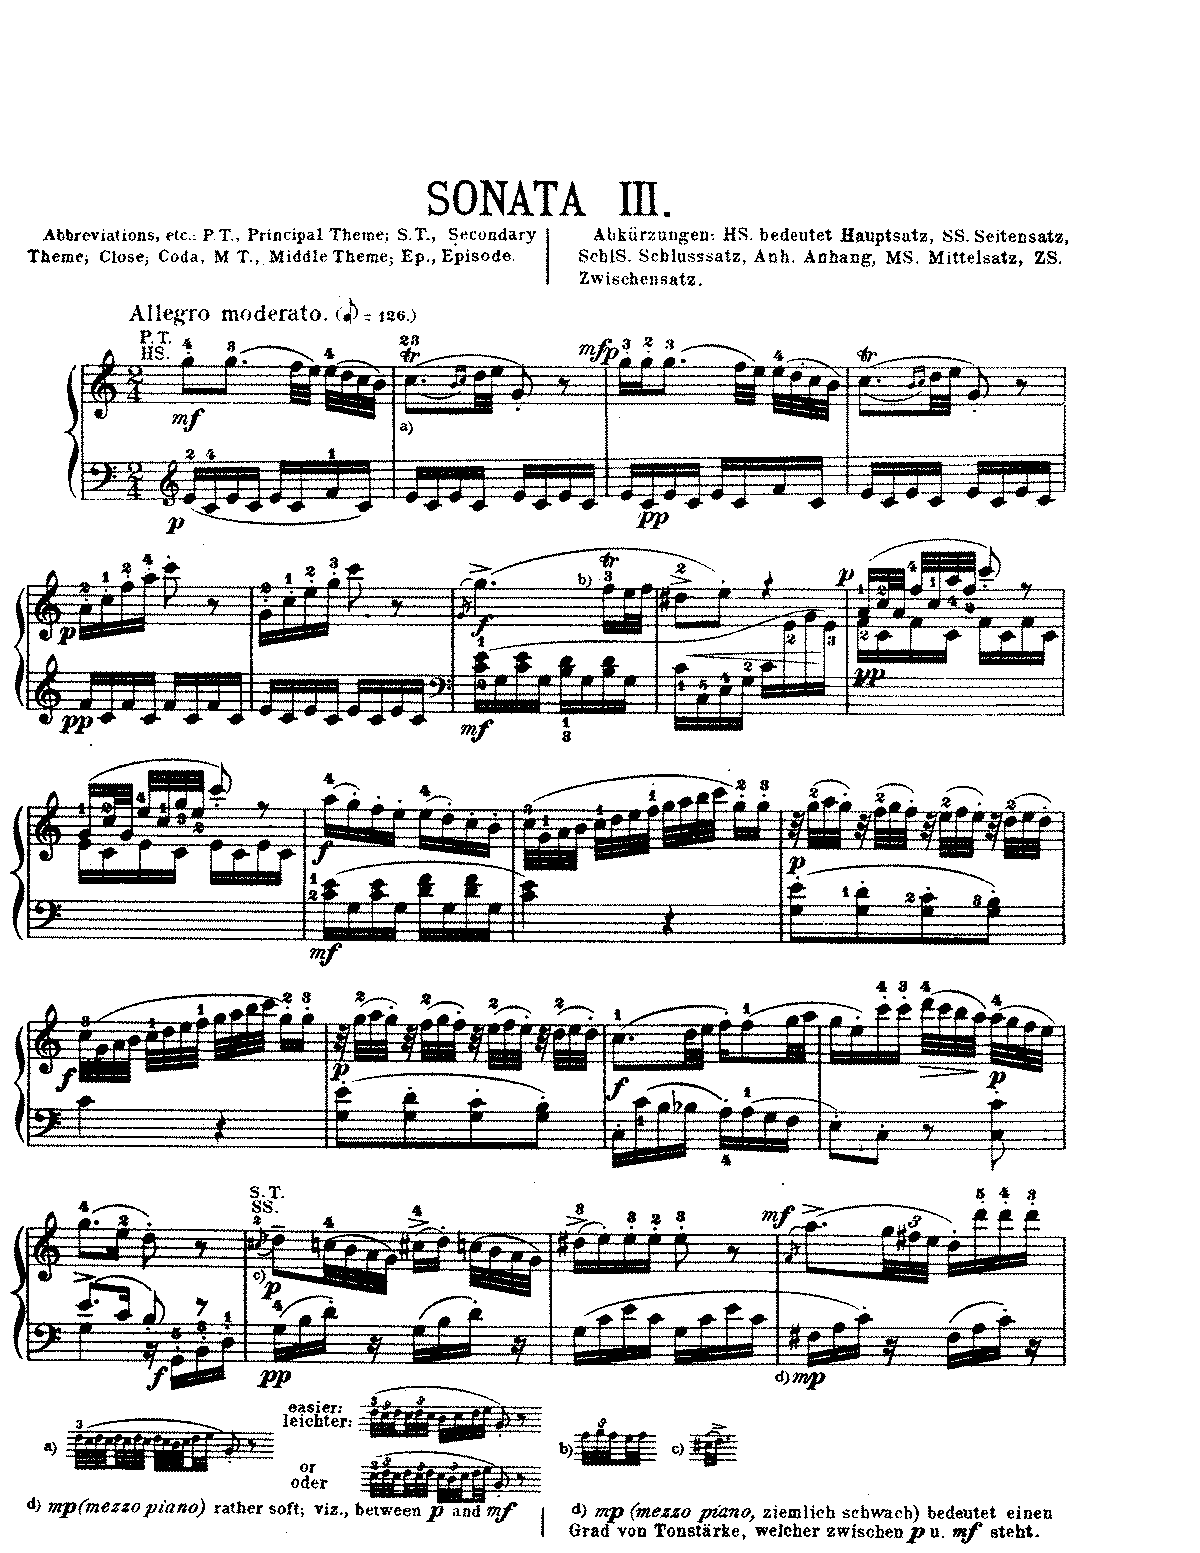 mozart piano sonata no 3 The journal of music theory pedagogy is a project of the gail boyd de stwolinski center for music theory pedagogy at the university of oklahoma the center was established in 1985 to provide an international clearinghouse for information concerning the teaching and learning of music theory.